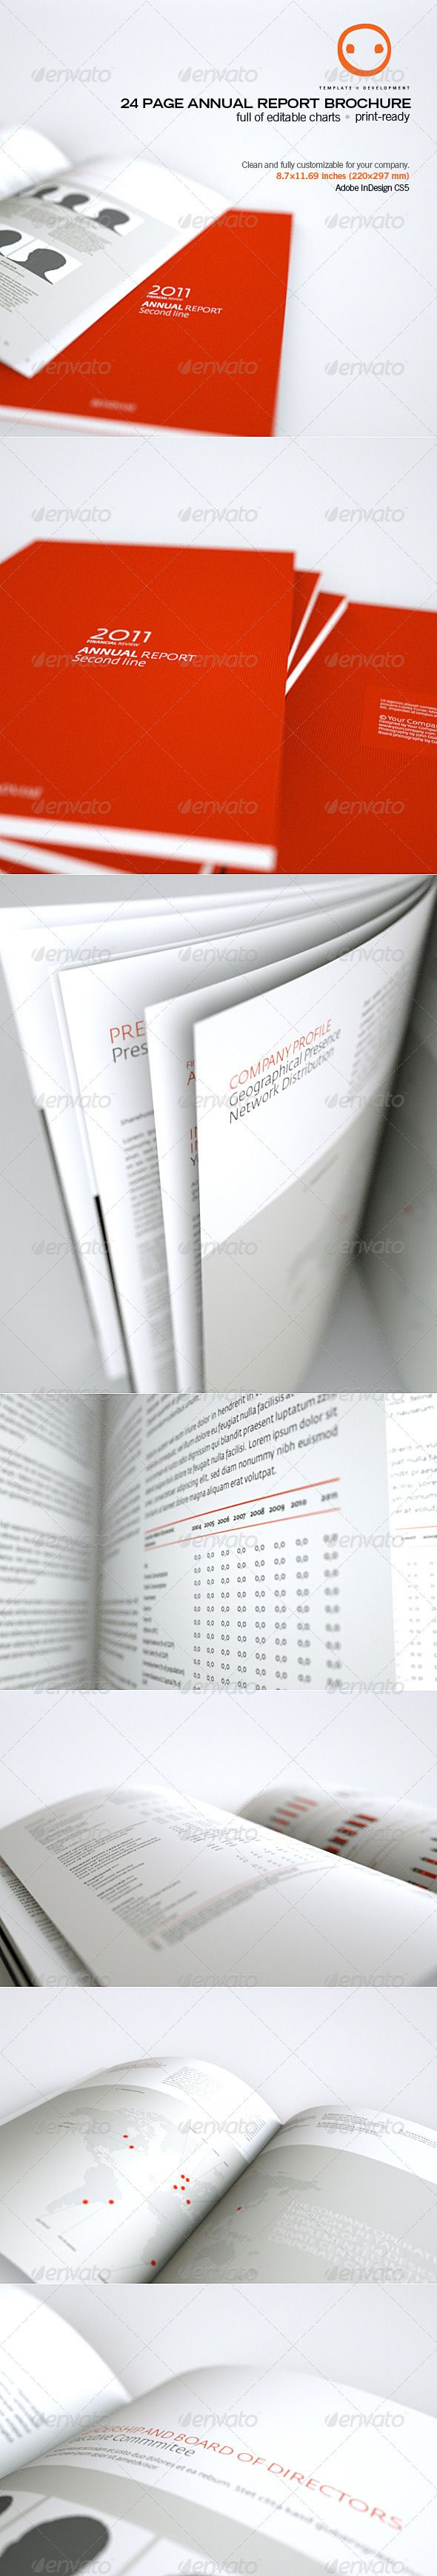 11 best Annual report design images on Pinterest | Annual report ...